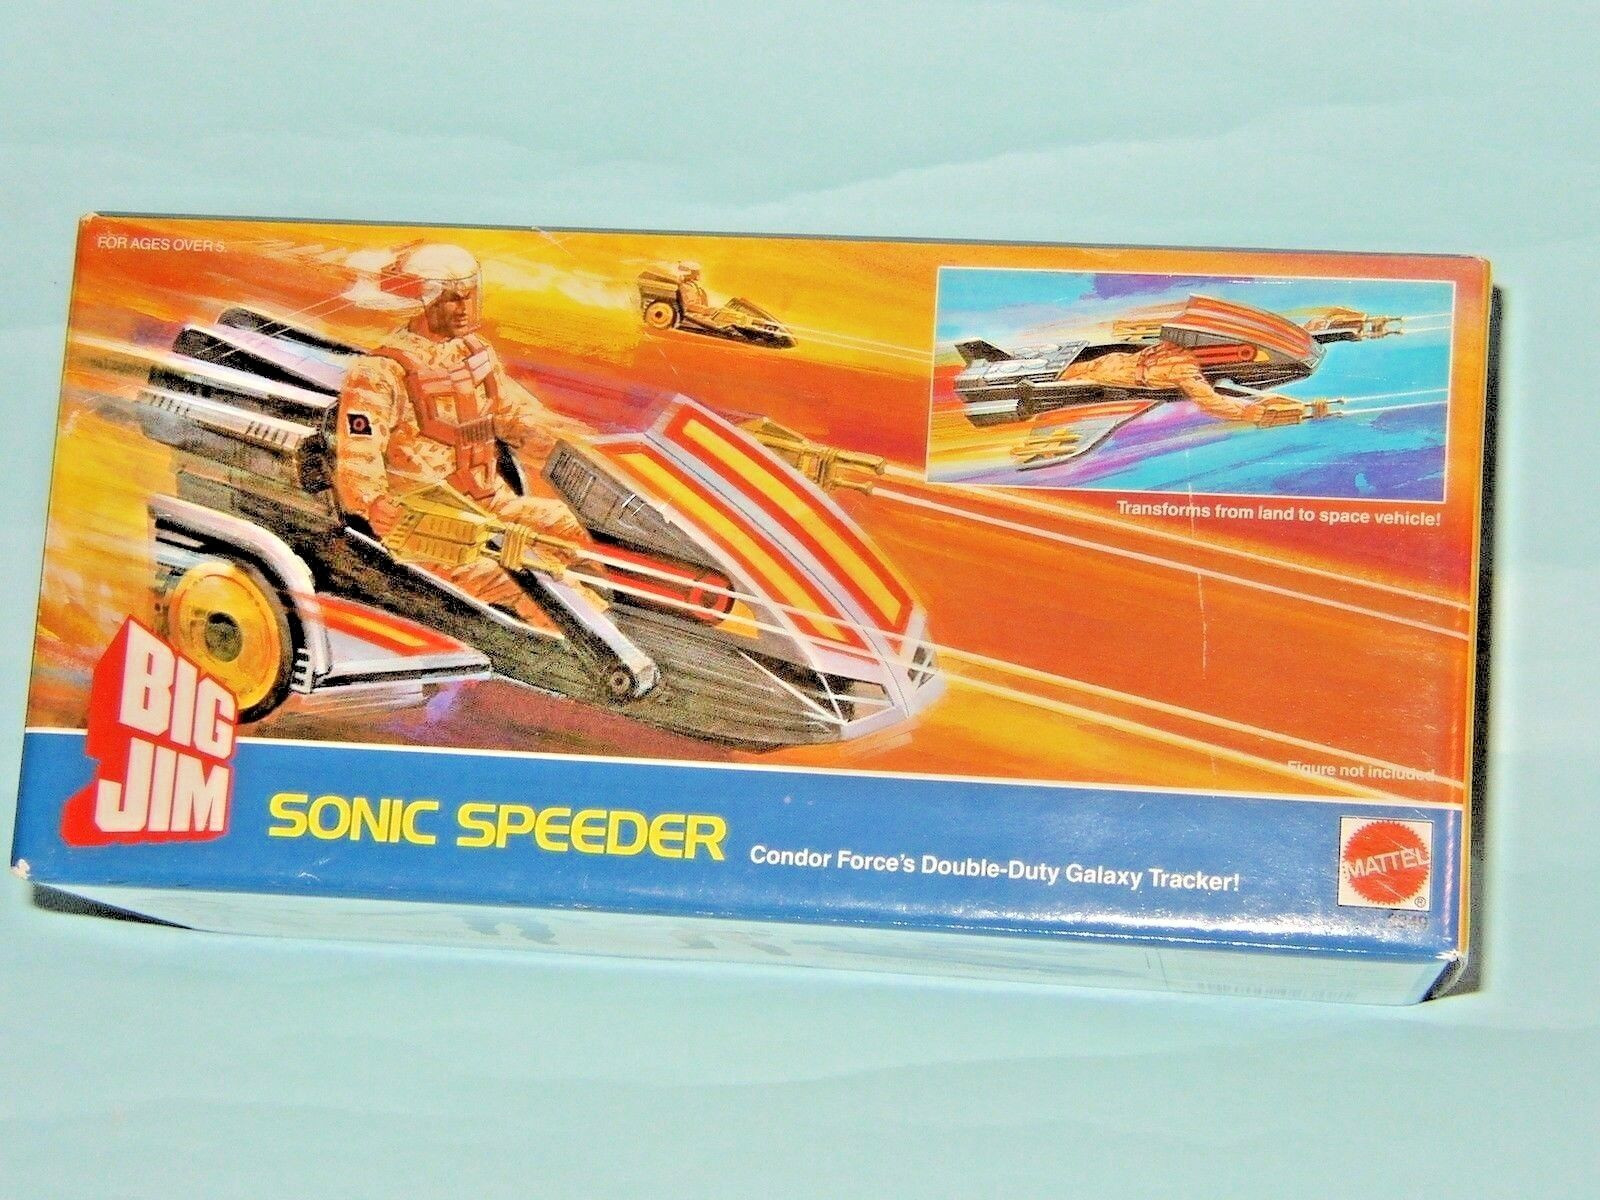 Big jim sonic roller scooter - flitzer - mattel 1986   2349 mib perfetto